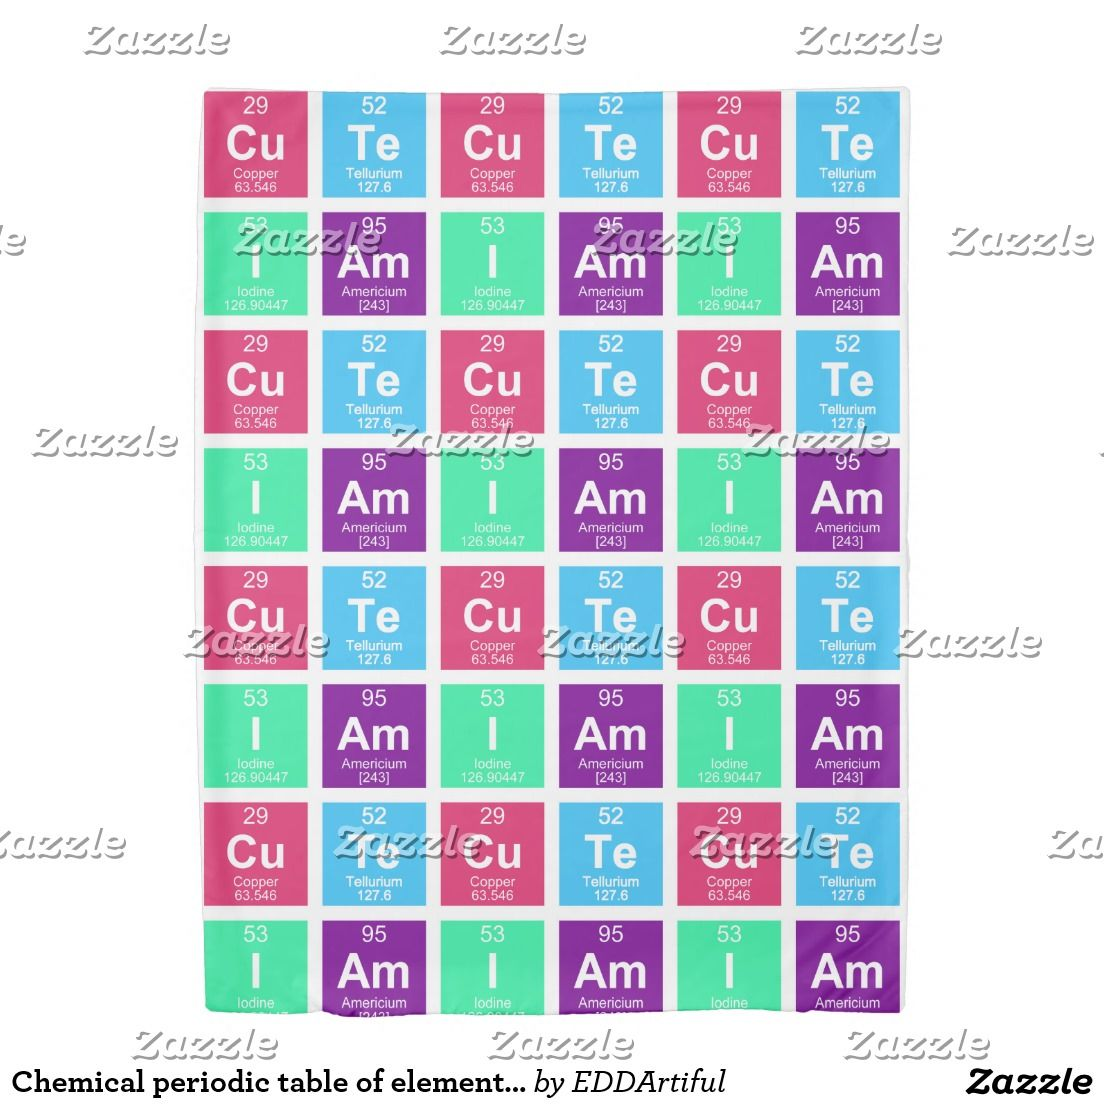 Chemical periodic table of elements iam cute duvet cover tables chemical periodic table of elements iam cute duvet cover gamestrikefo Images